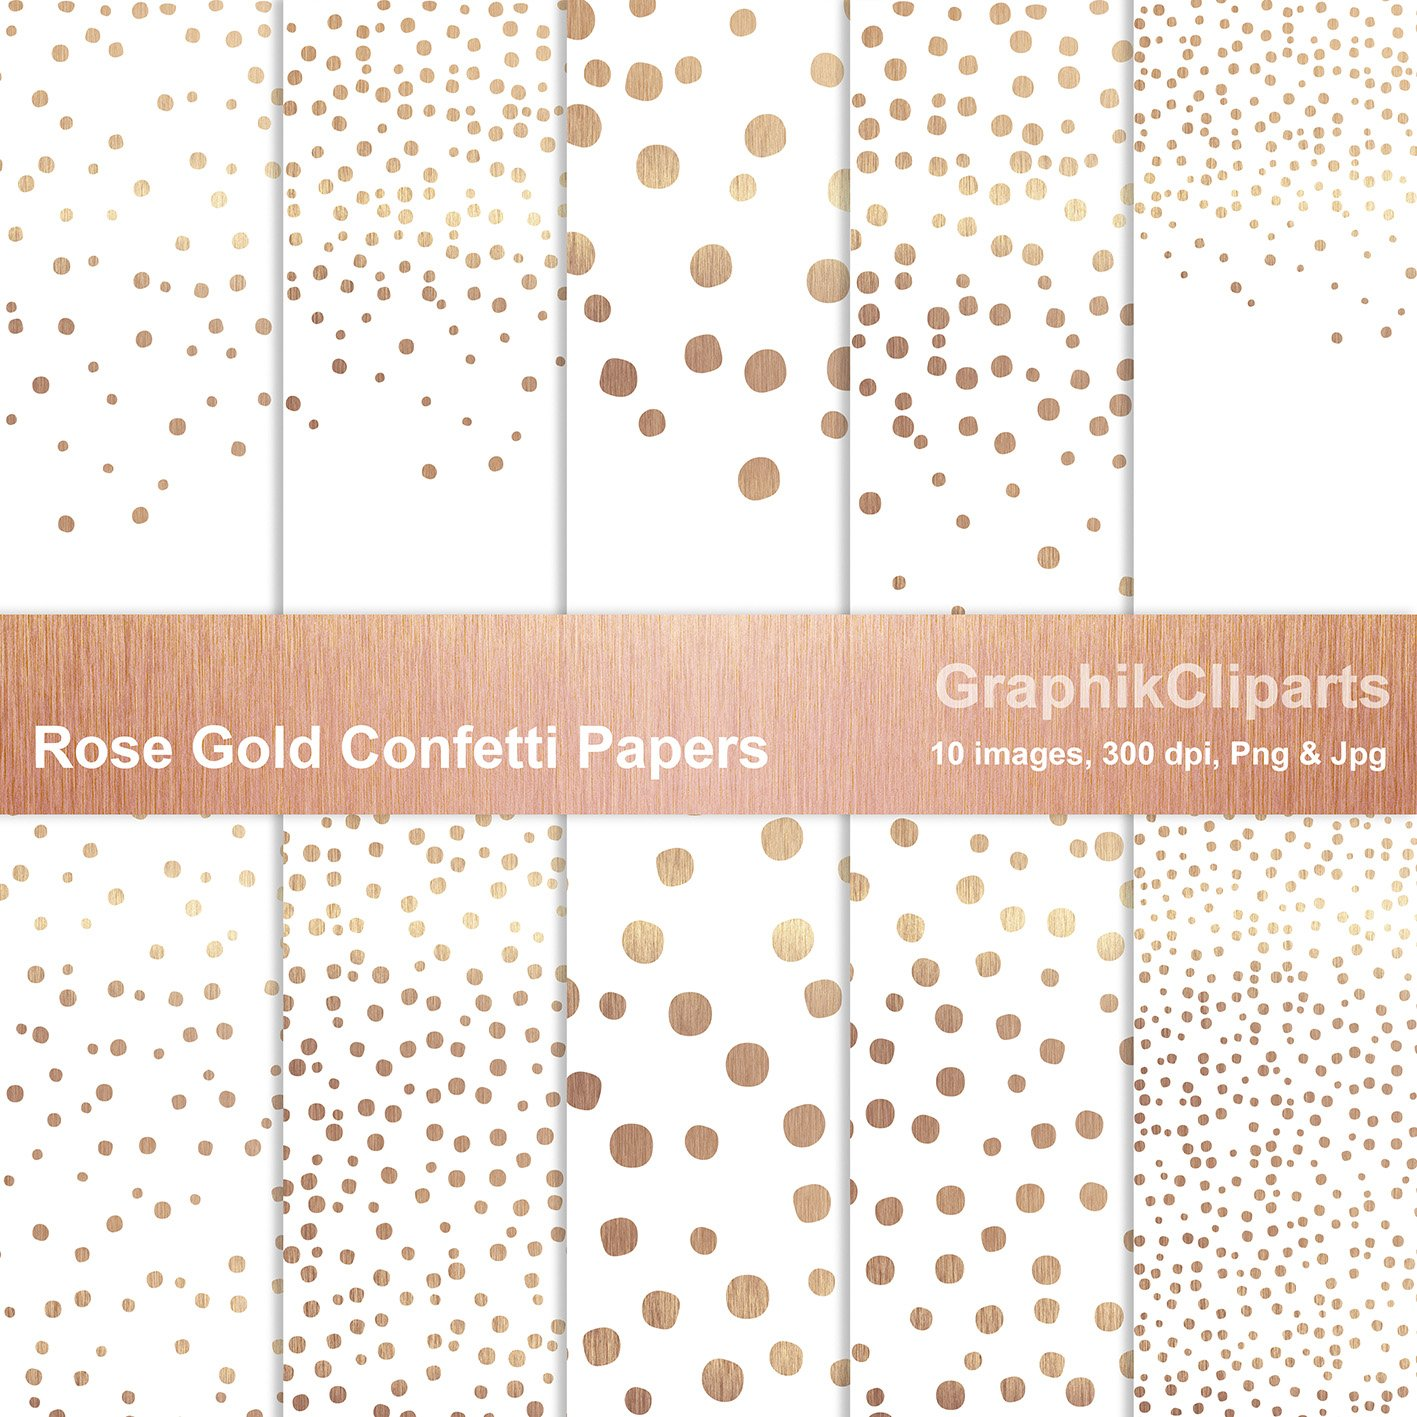 Rose Gold Confetti Papers Png+Jpg